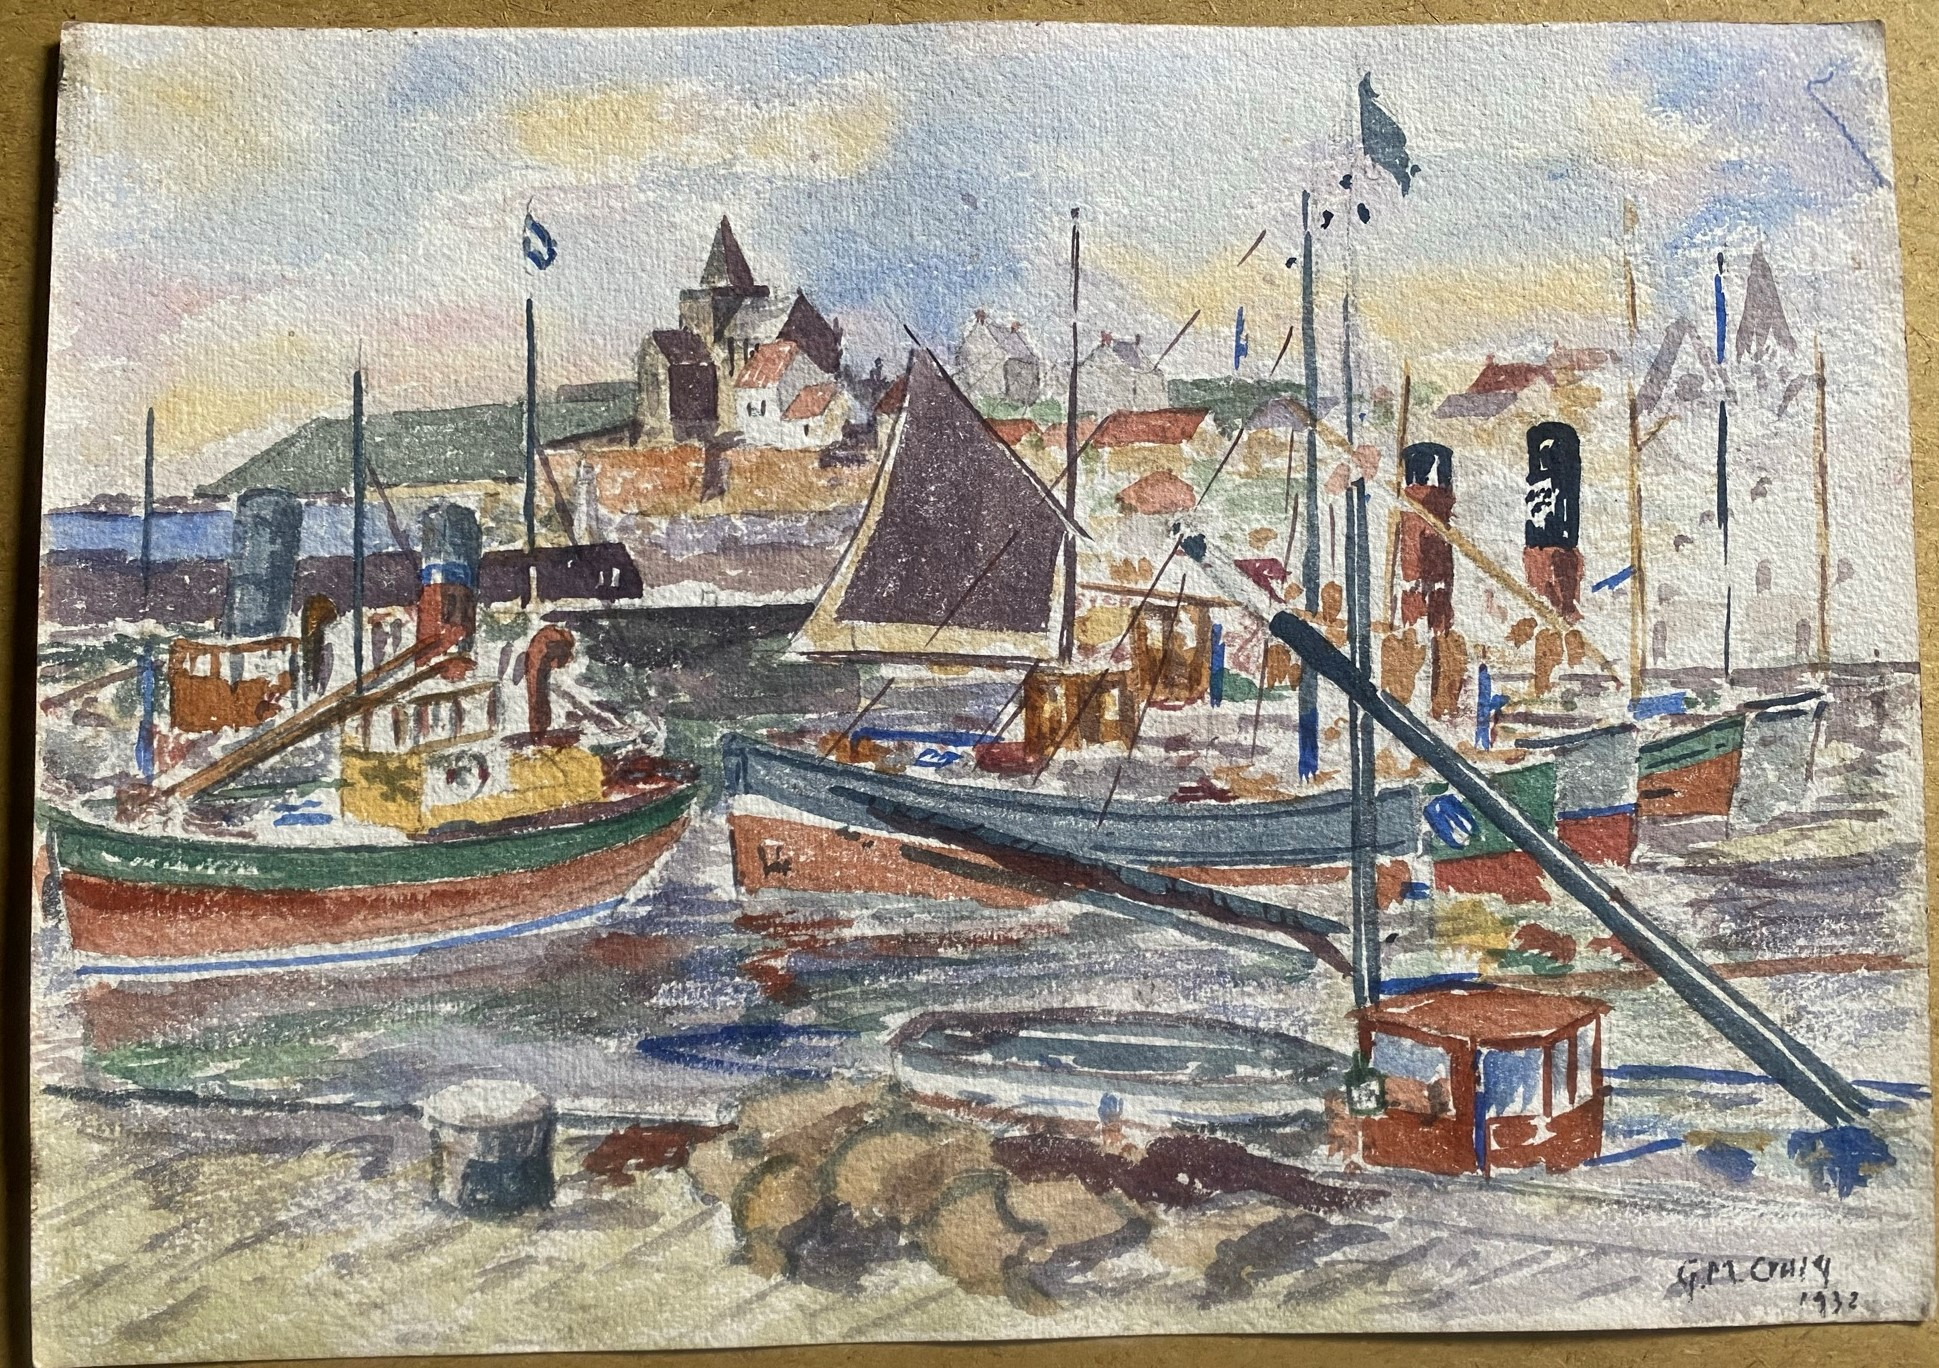 Watercolour signed G. M. Craig, (Gertrude Mary) St Monance - Image 2 of 4